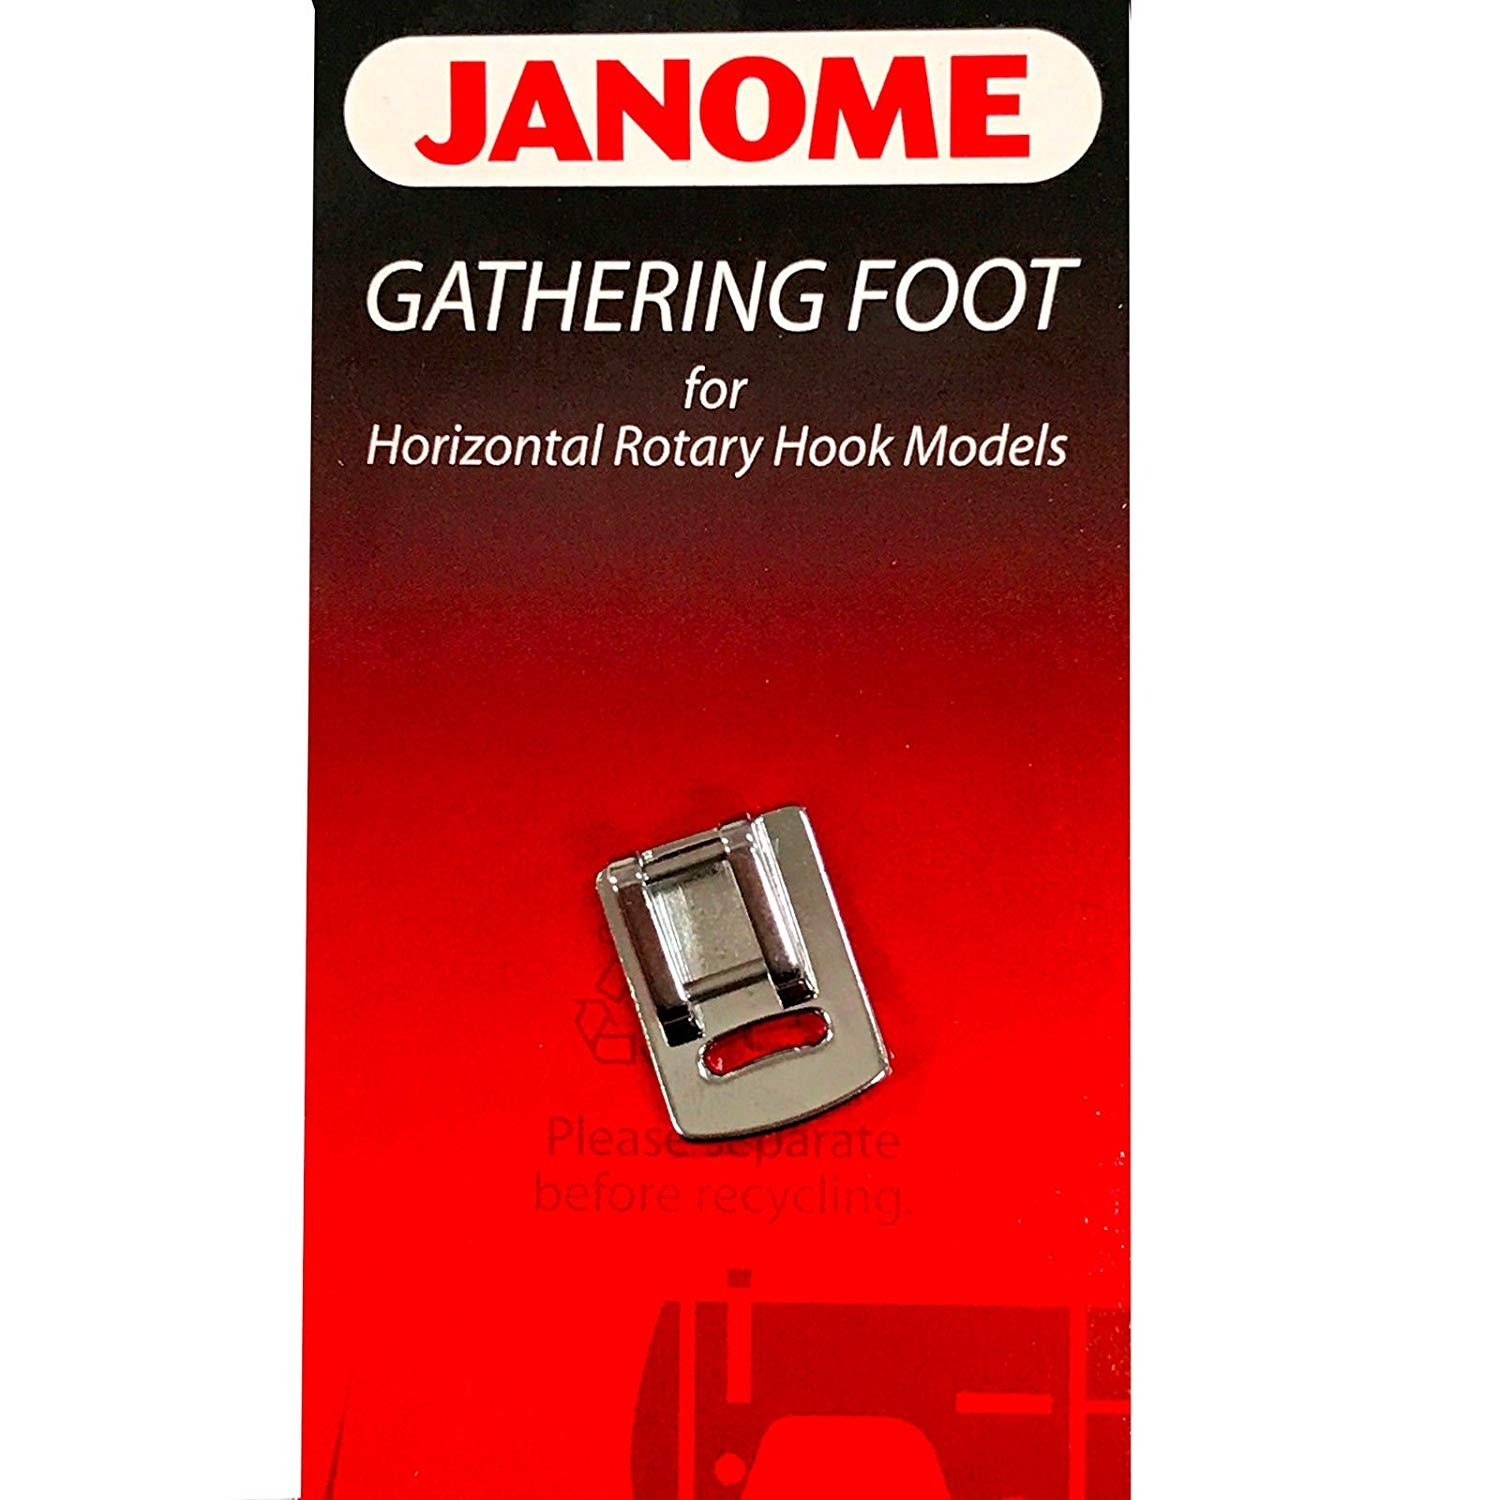 Janome Gathering Foot top load